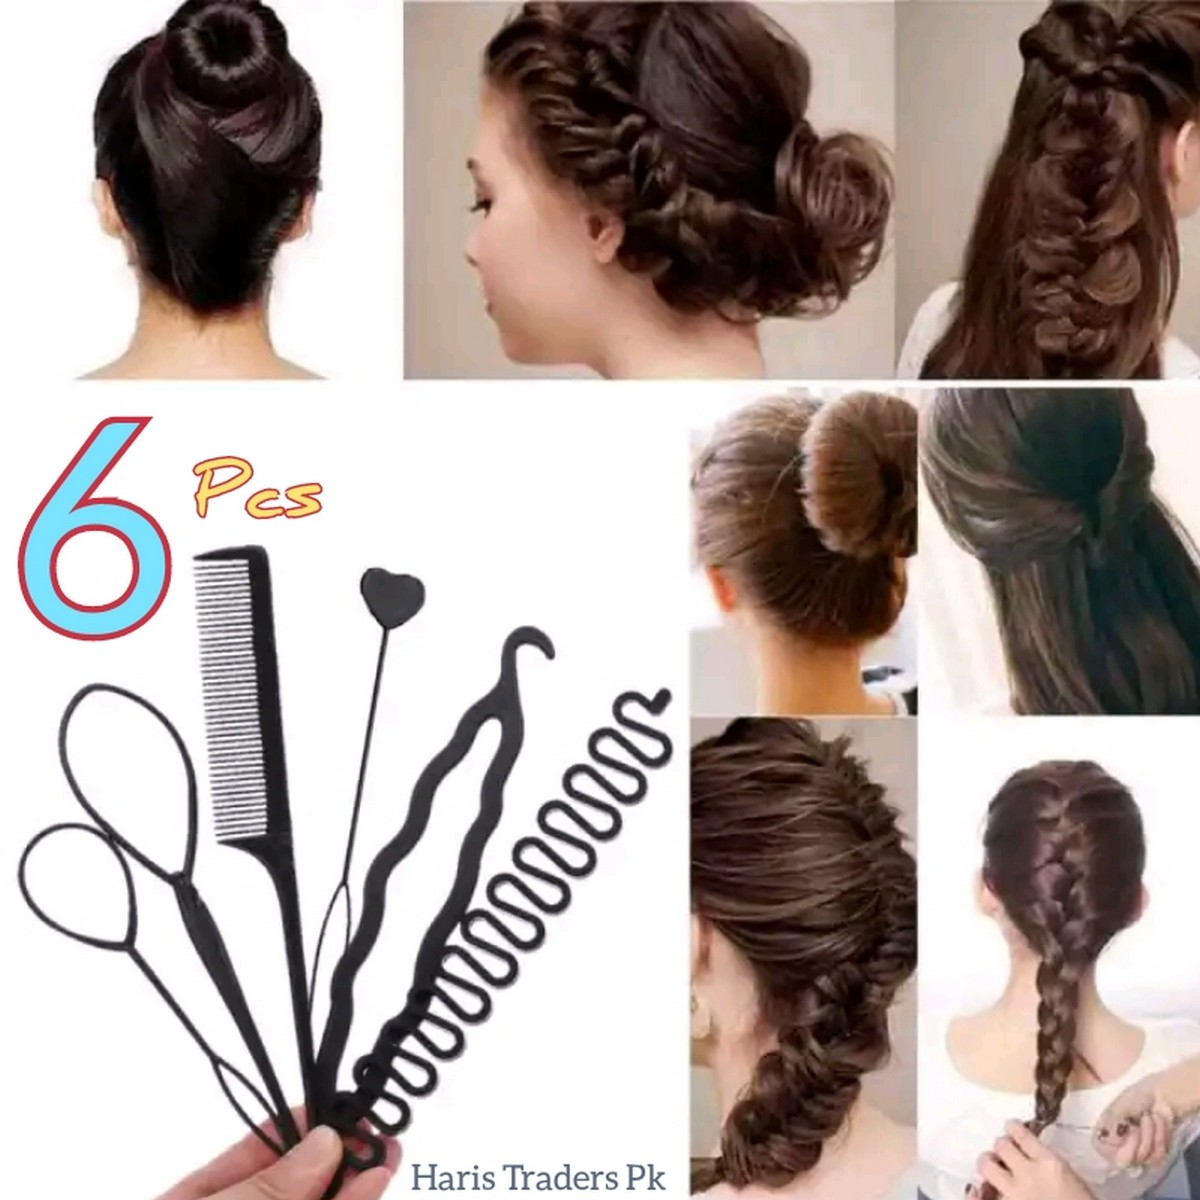 6 Pcs Hair Styling Tools Hair Accessories , Hair styling comb set, Hair care kit, hair care products , Hair bands for girls hair accessories for girls Hair accessories hair bands for girls Hair band hair straightener hair styler